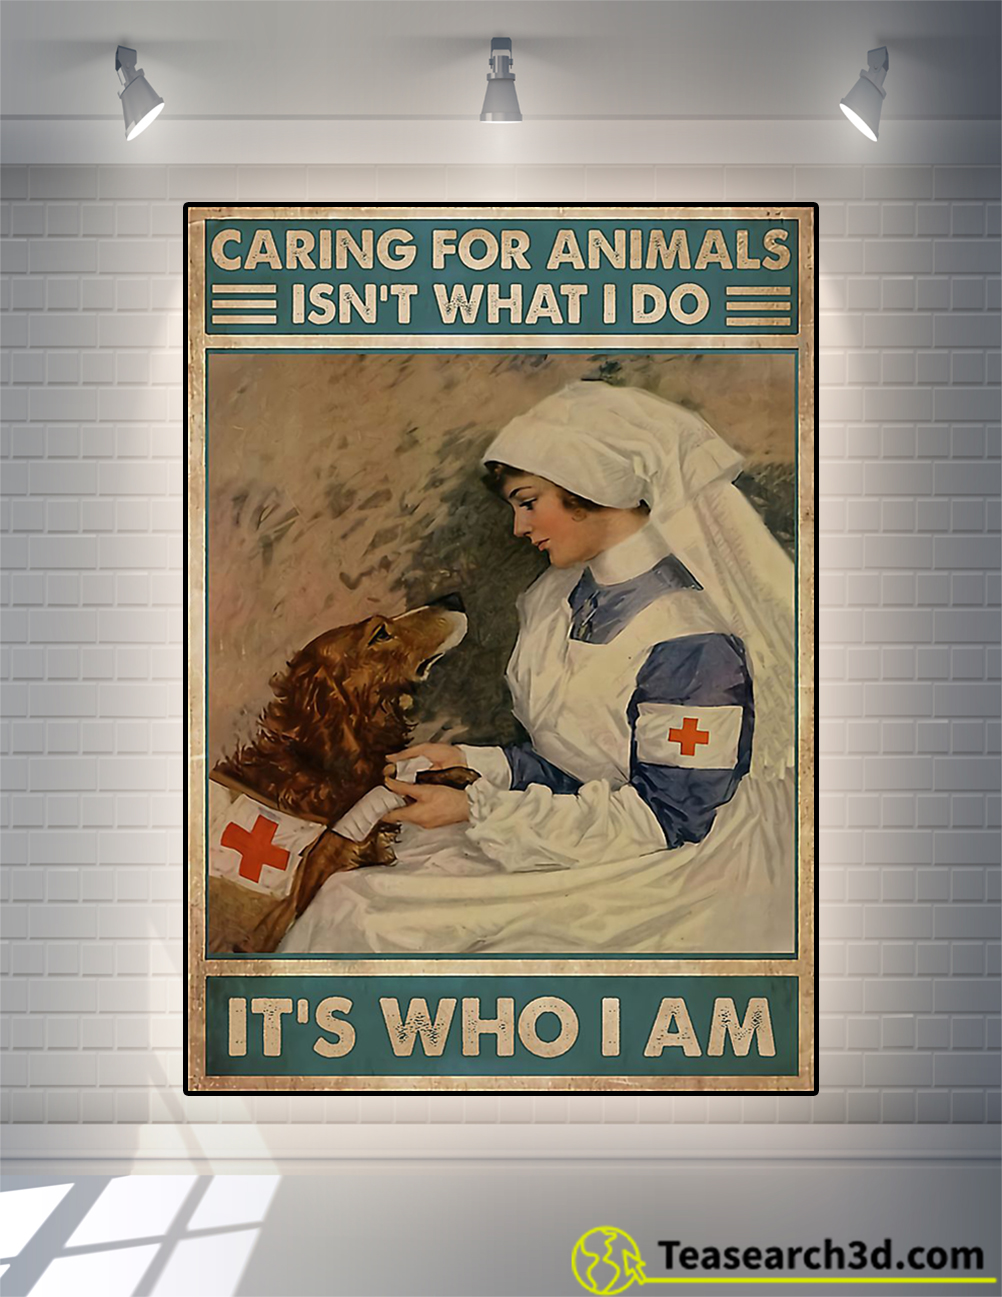 Veterinarian caring for animals isn't what I do It's who I am poster